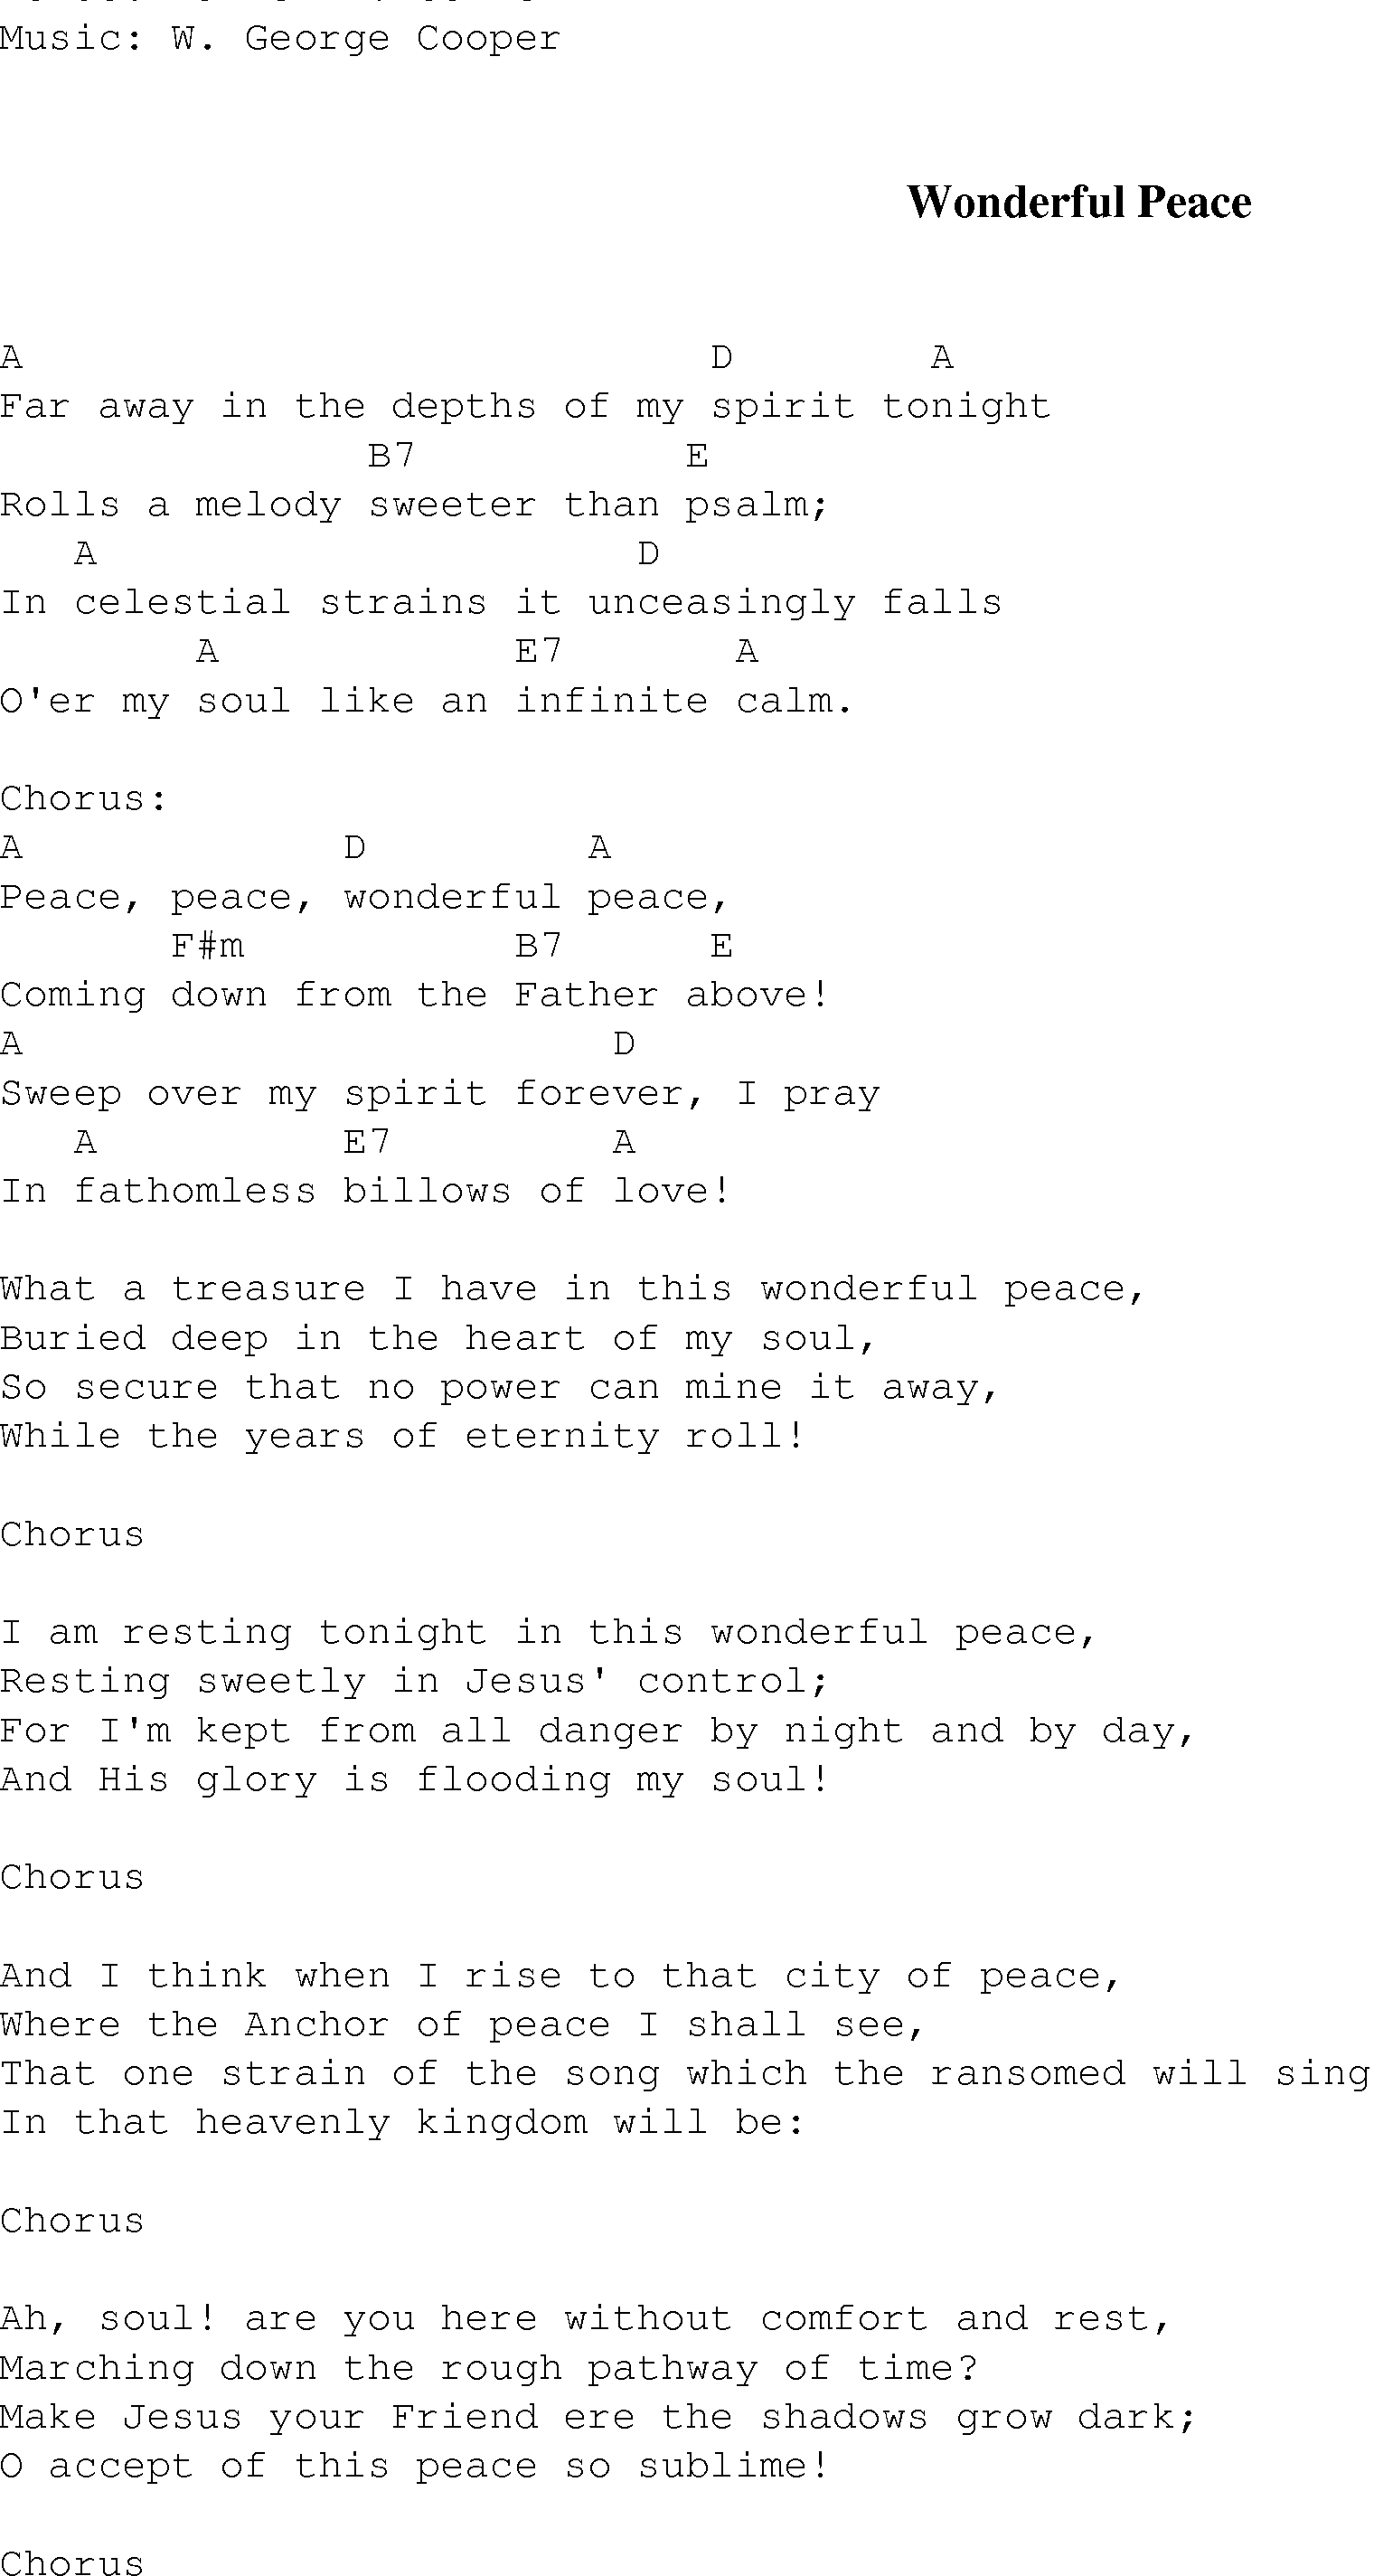 Wonderful Peace Christian Gospel Song Lyrics And Chords